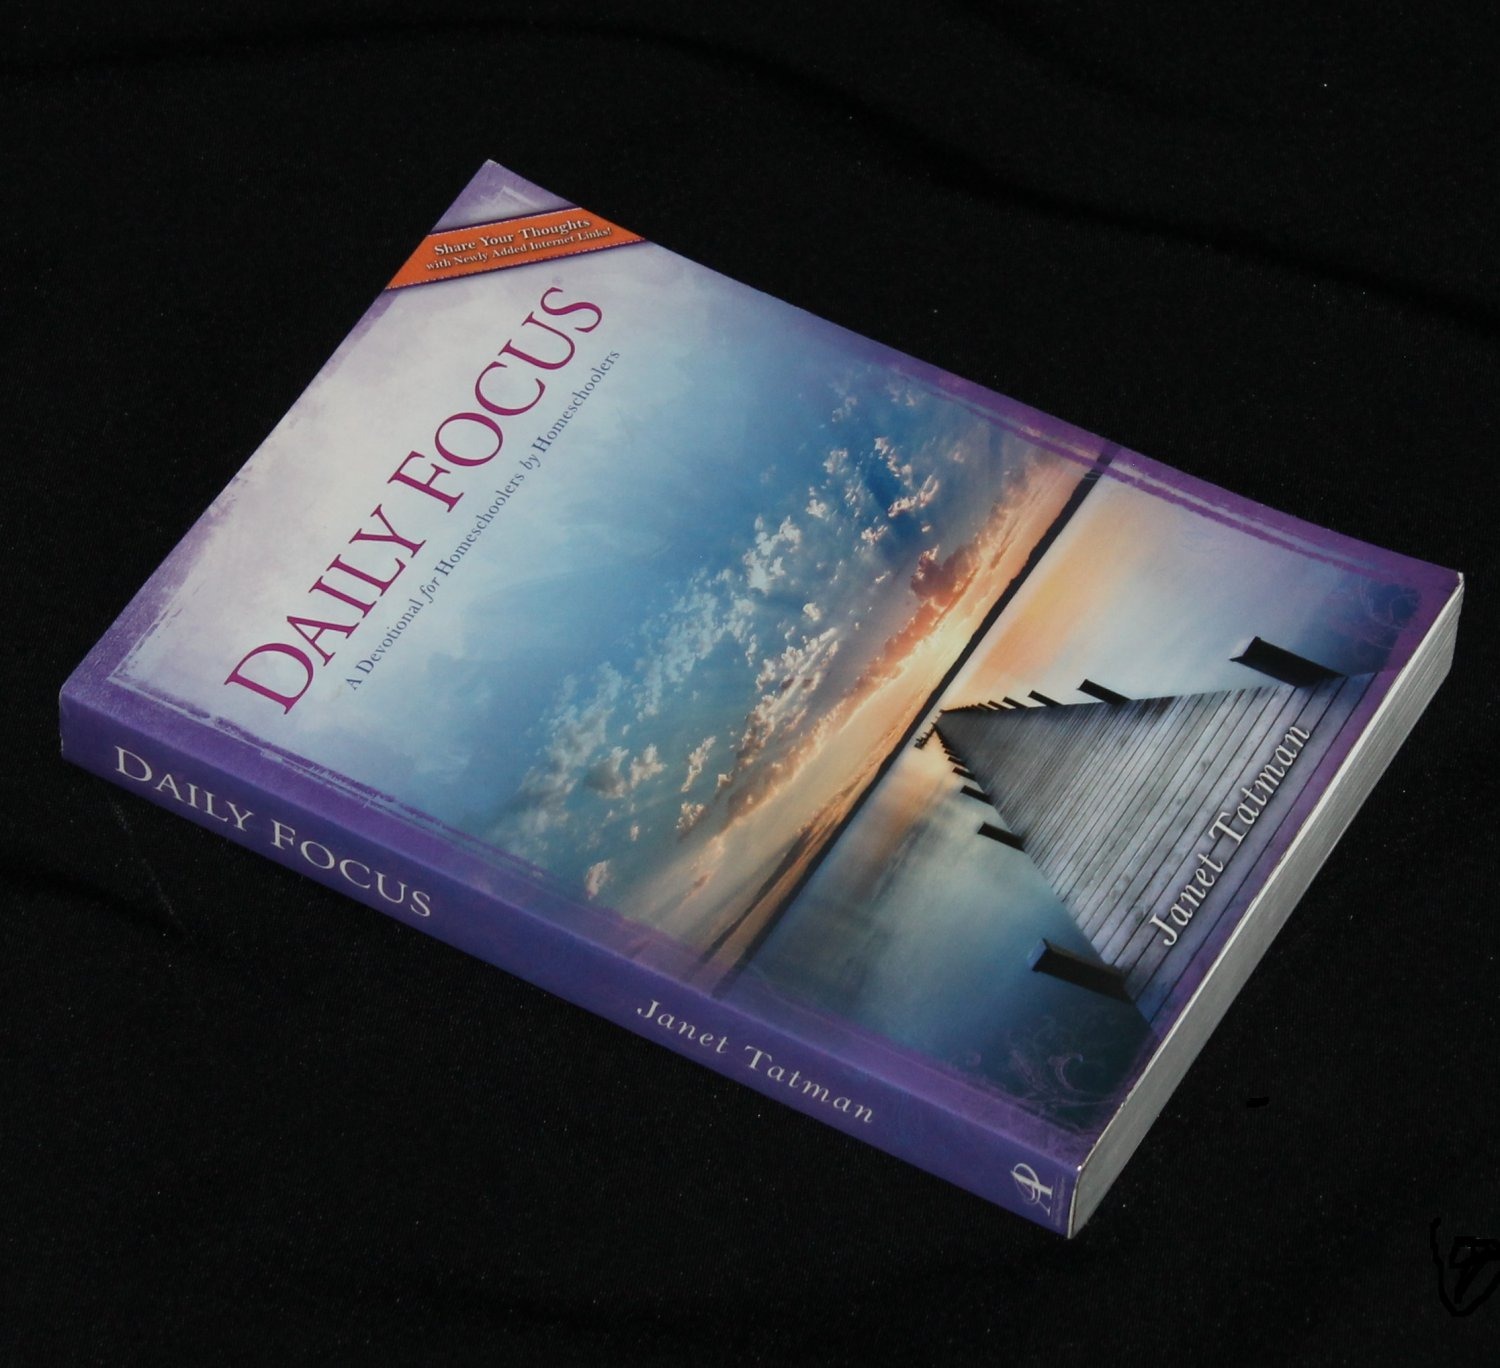 Daily Focus by Janet Tatman A Devotional For Homeschoolers